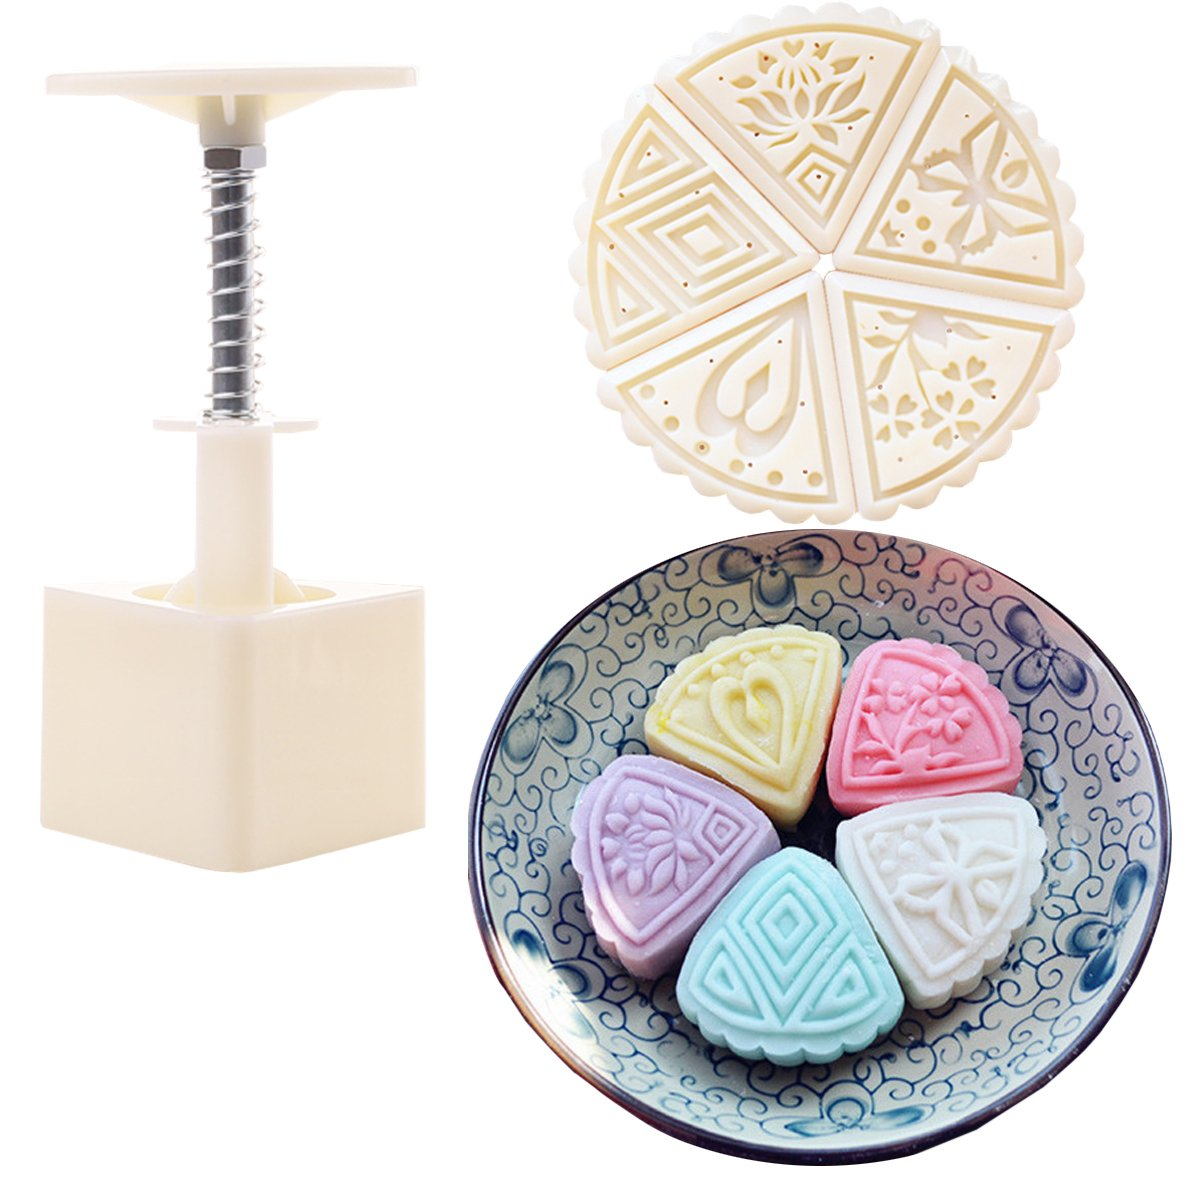 Father.son mooncake tools cake mould cake mold China's Mid-Autumn Festival Moon cake mold DIY tools set (tradition of 4 100g) fs.cm.4